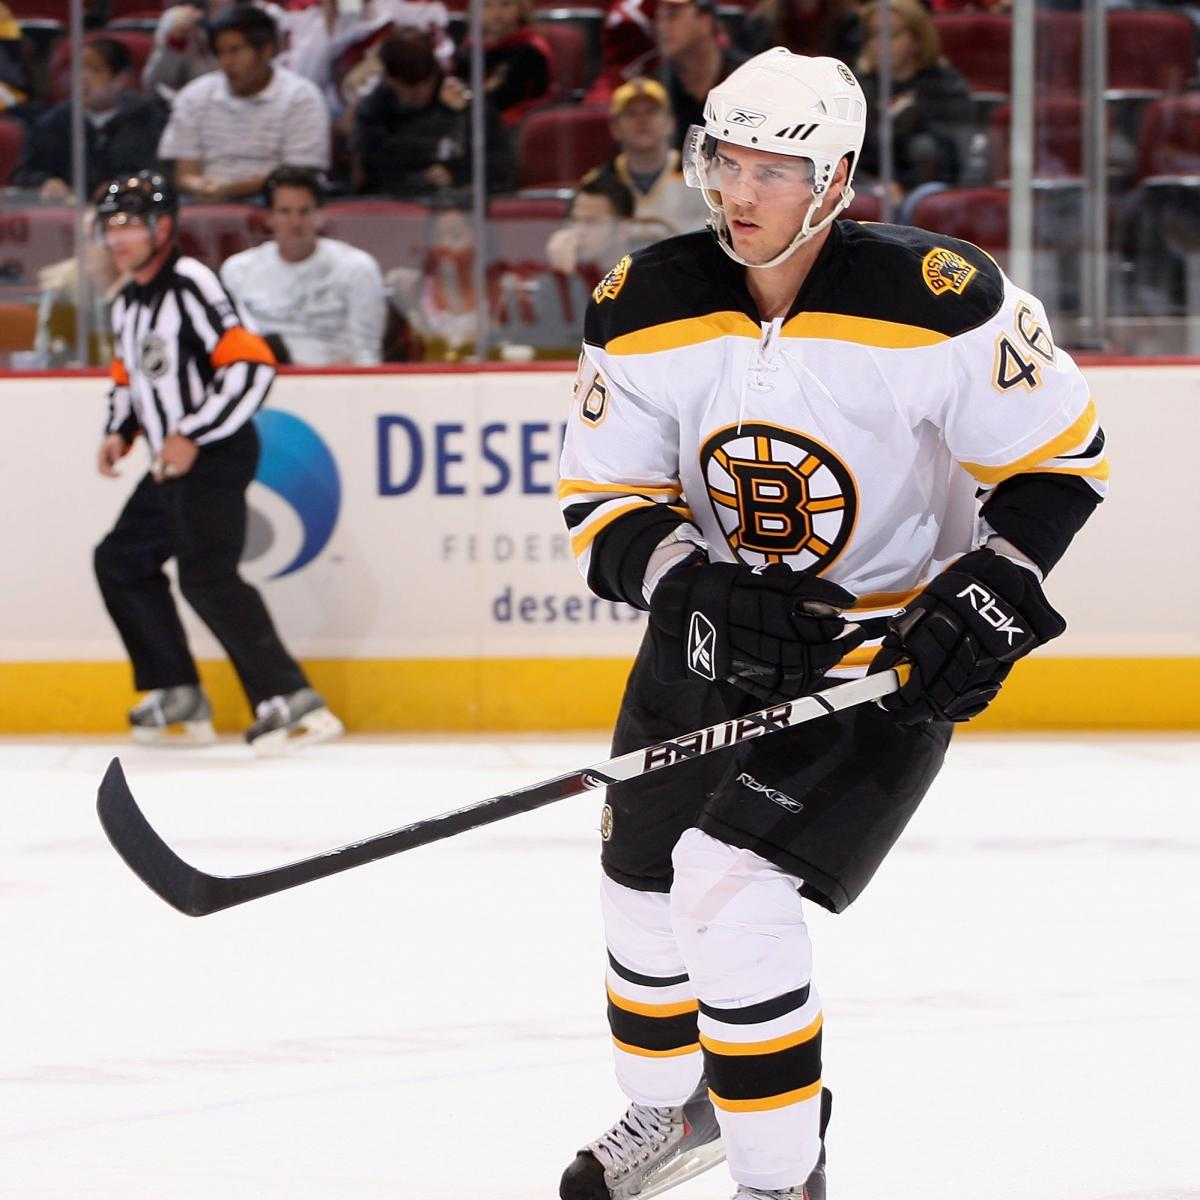 NHL Trade Rumors: Should Bruins Trade David Krejci For A